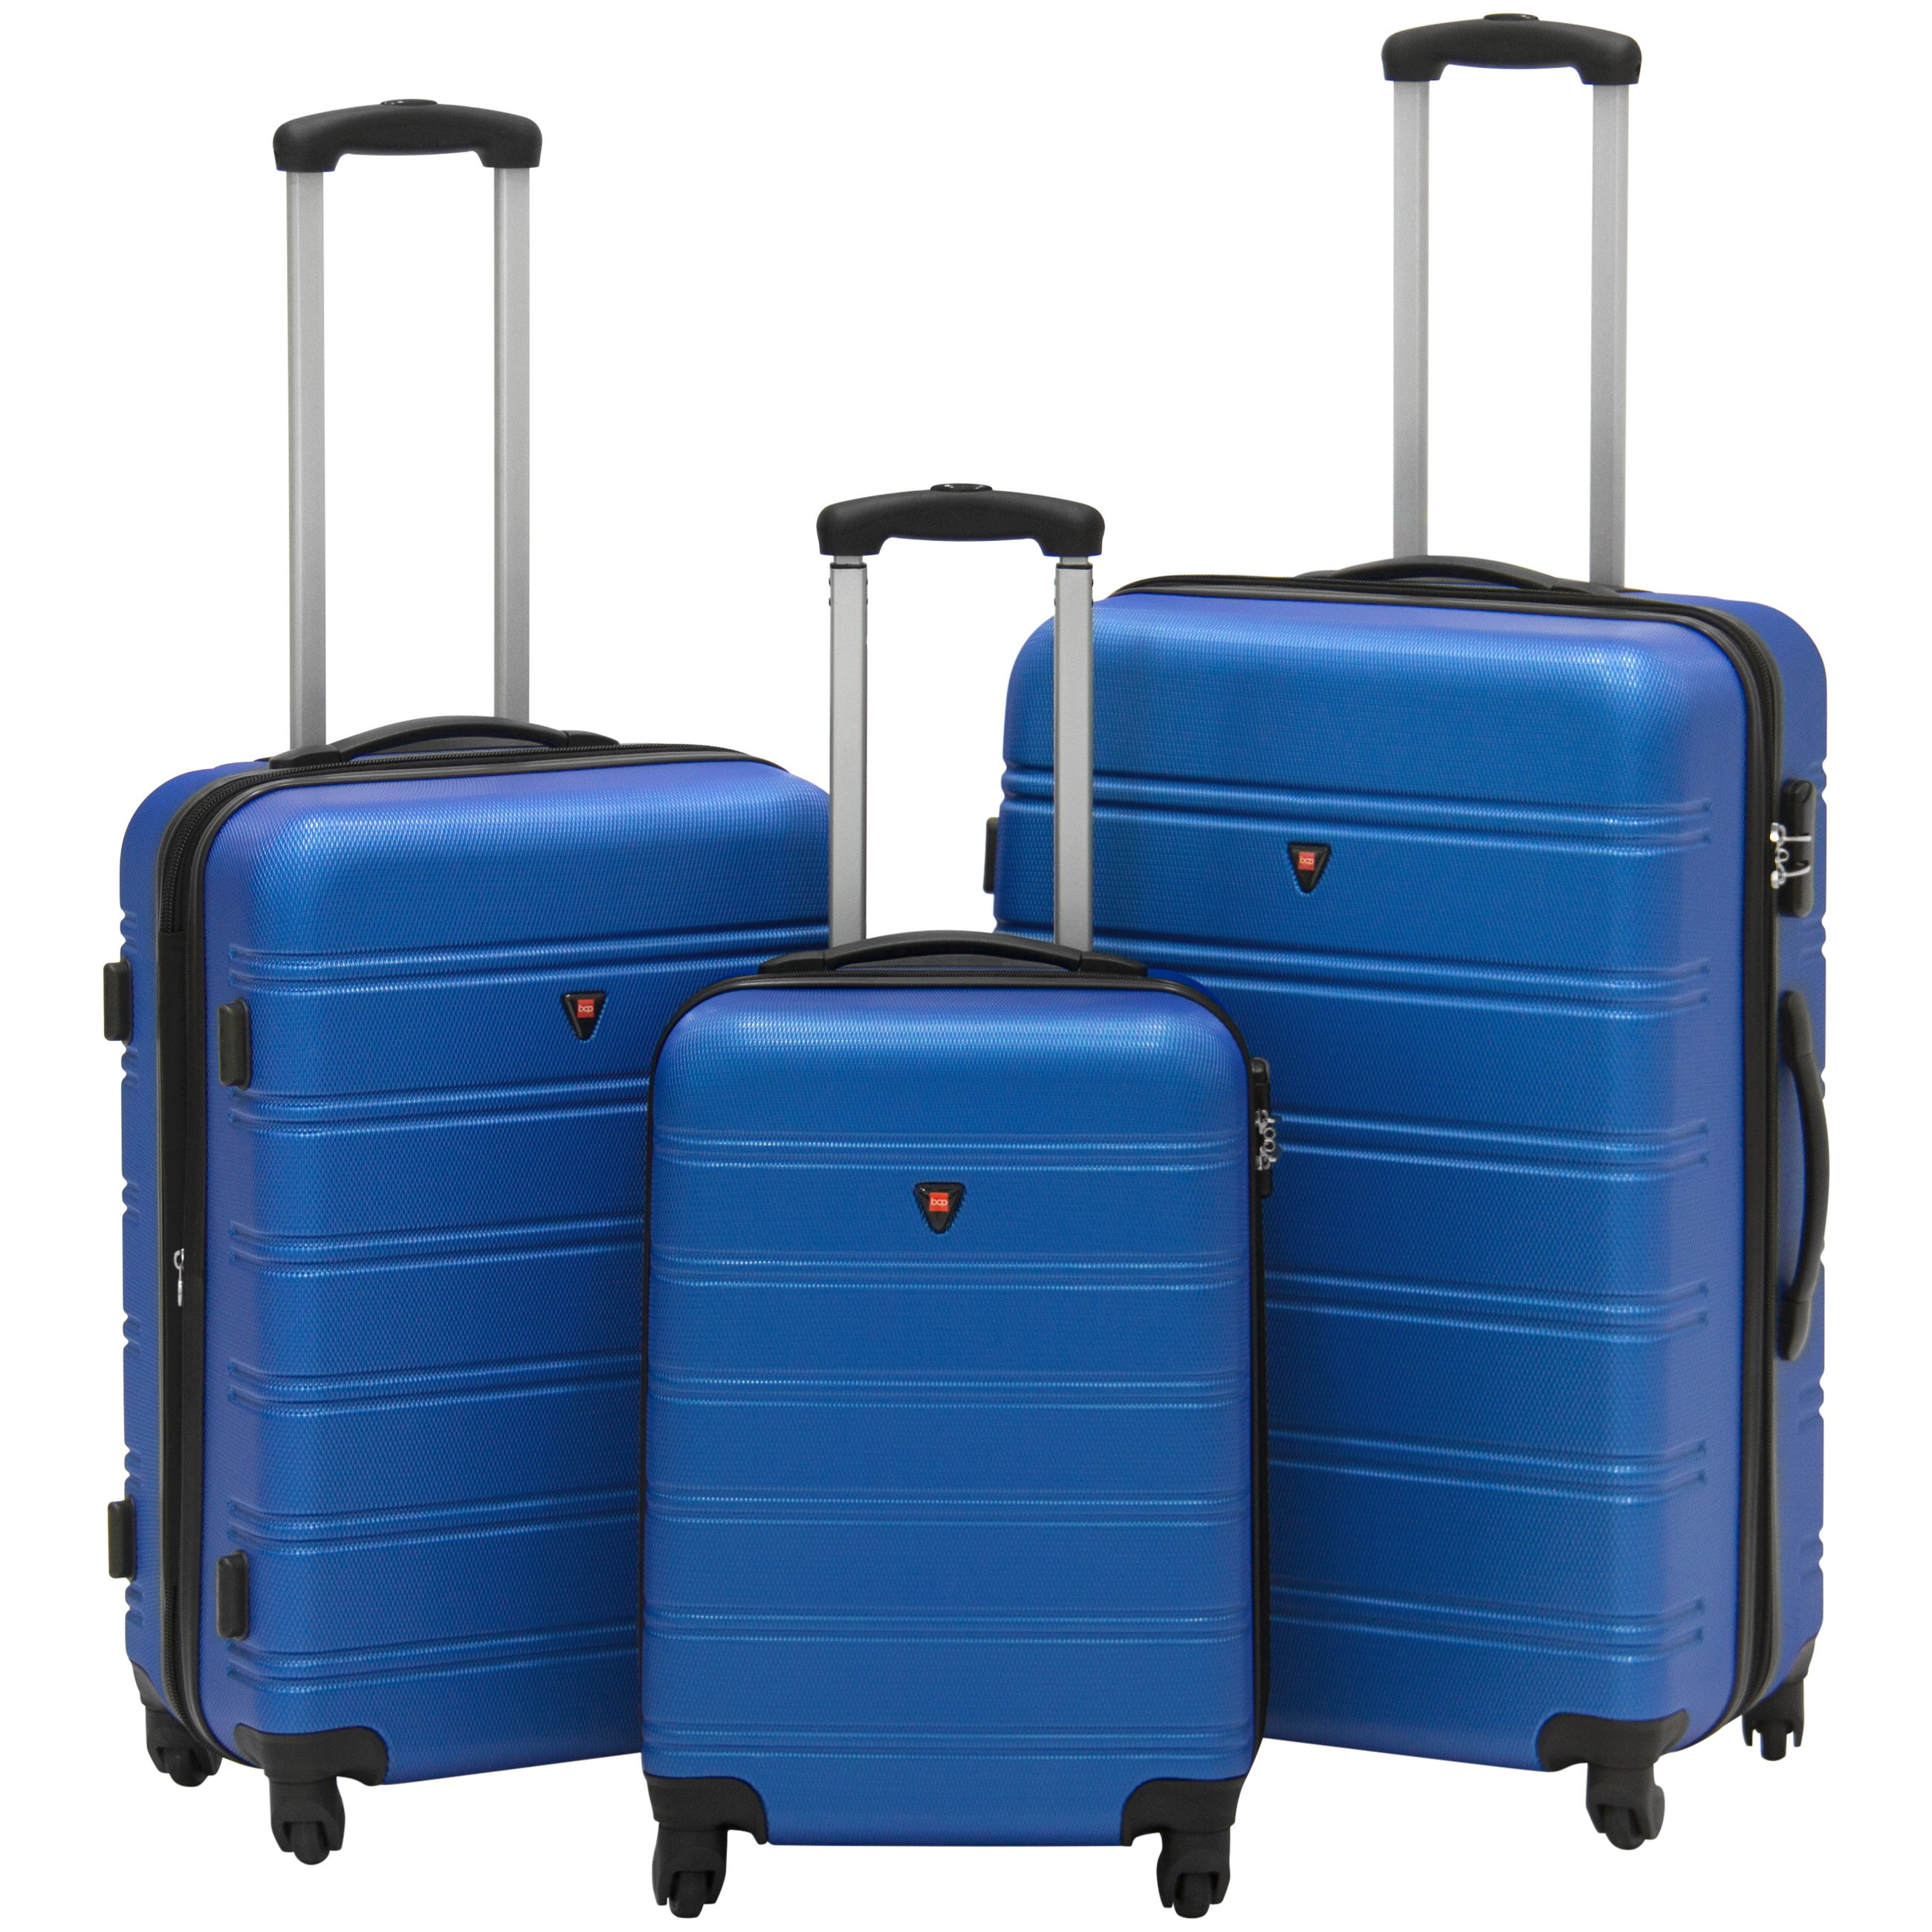 Best Choice Products Hardshell 3 Piece Expandable Spinner Luggage Set - Blue